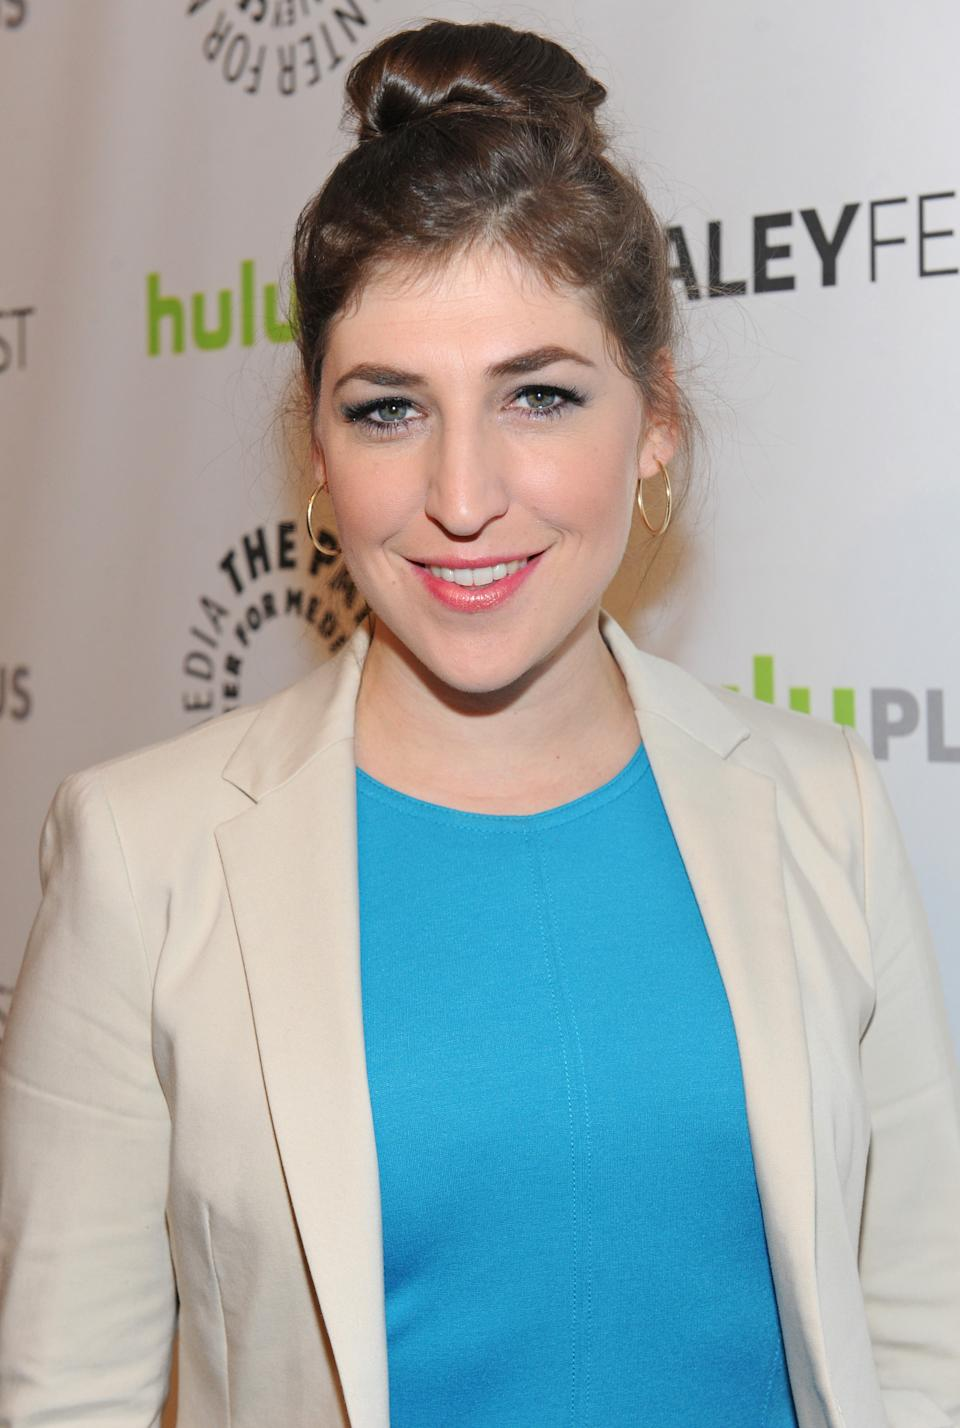 Mayim Bialik poses on arrival at the Paley Center for Media's PaleyFest, honoring The Big Bang Theory at the Saban Theatre, Wednesday March 13, 2013 in Los Angeles, California. (Photo by Kevin Parry/Invision/AP)